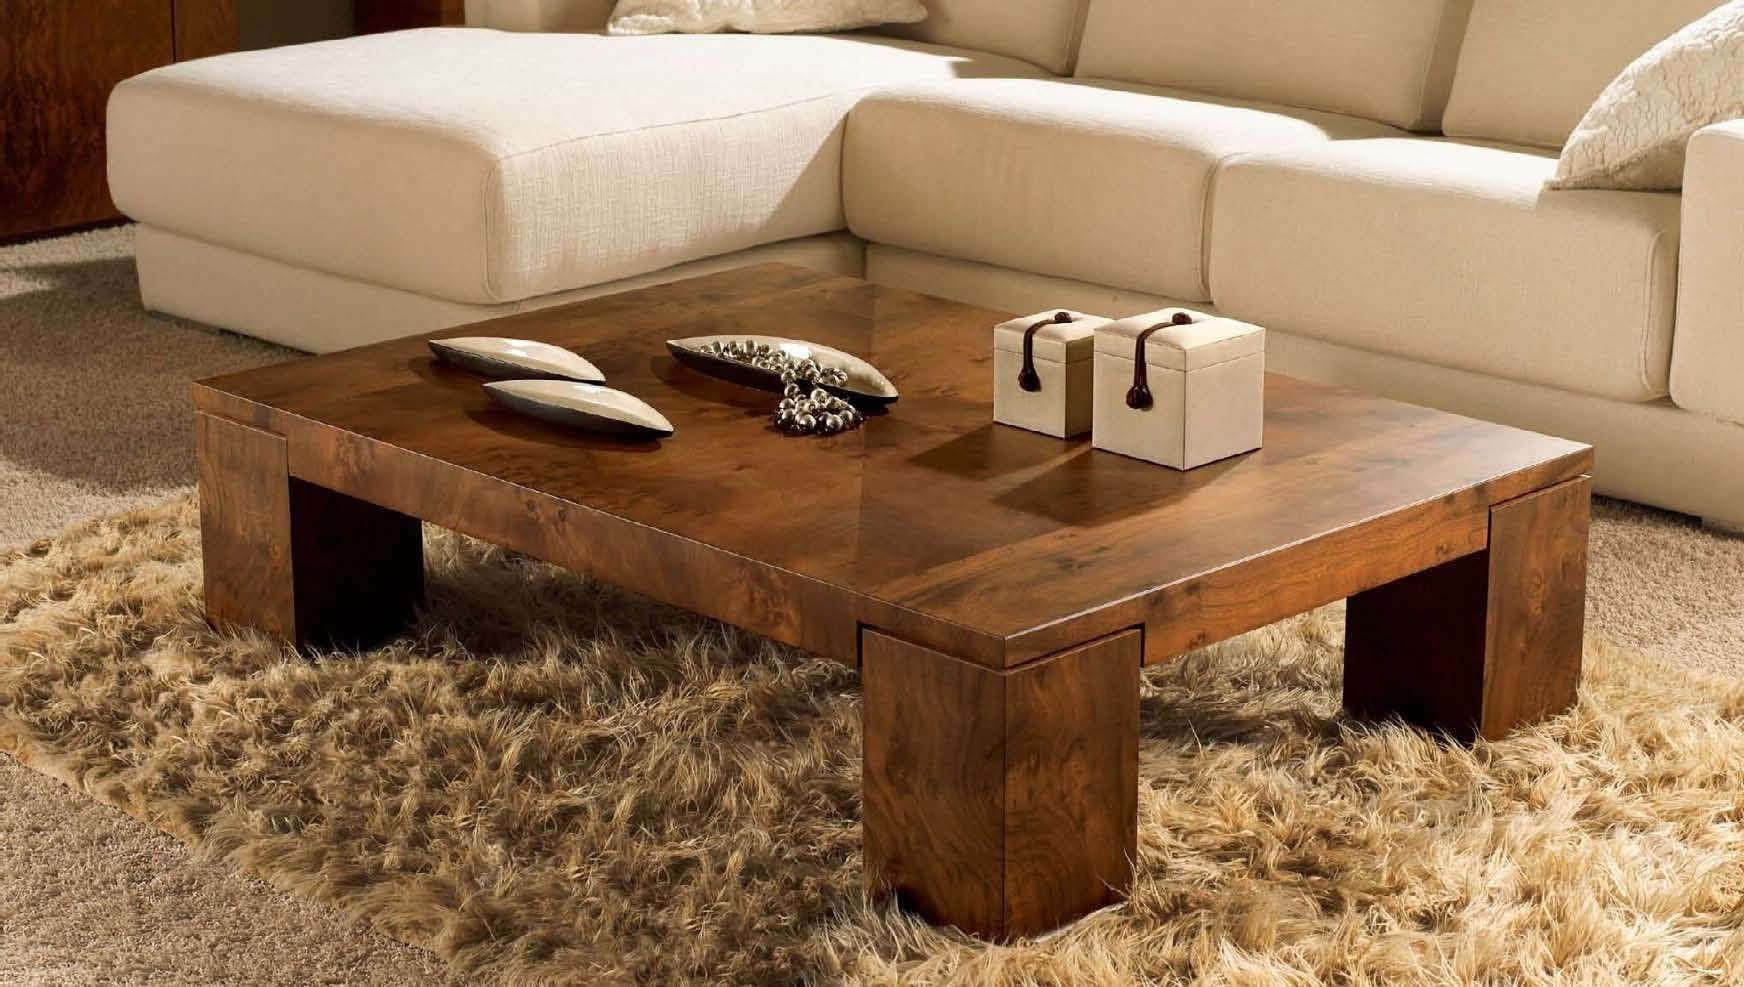 Messe Rustic Wood Coffee Table Designs New Grounds End Tables Intended For Most Recently Released Rustic Wooden Coffee Tables (View 19 of 20)